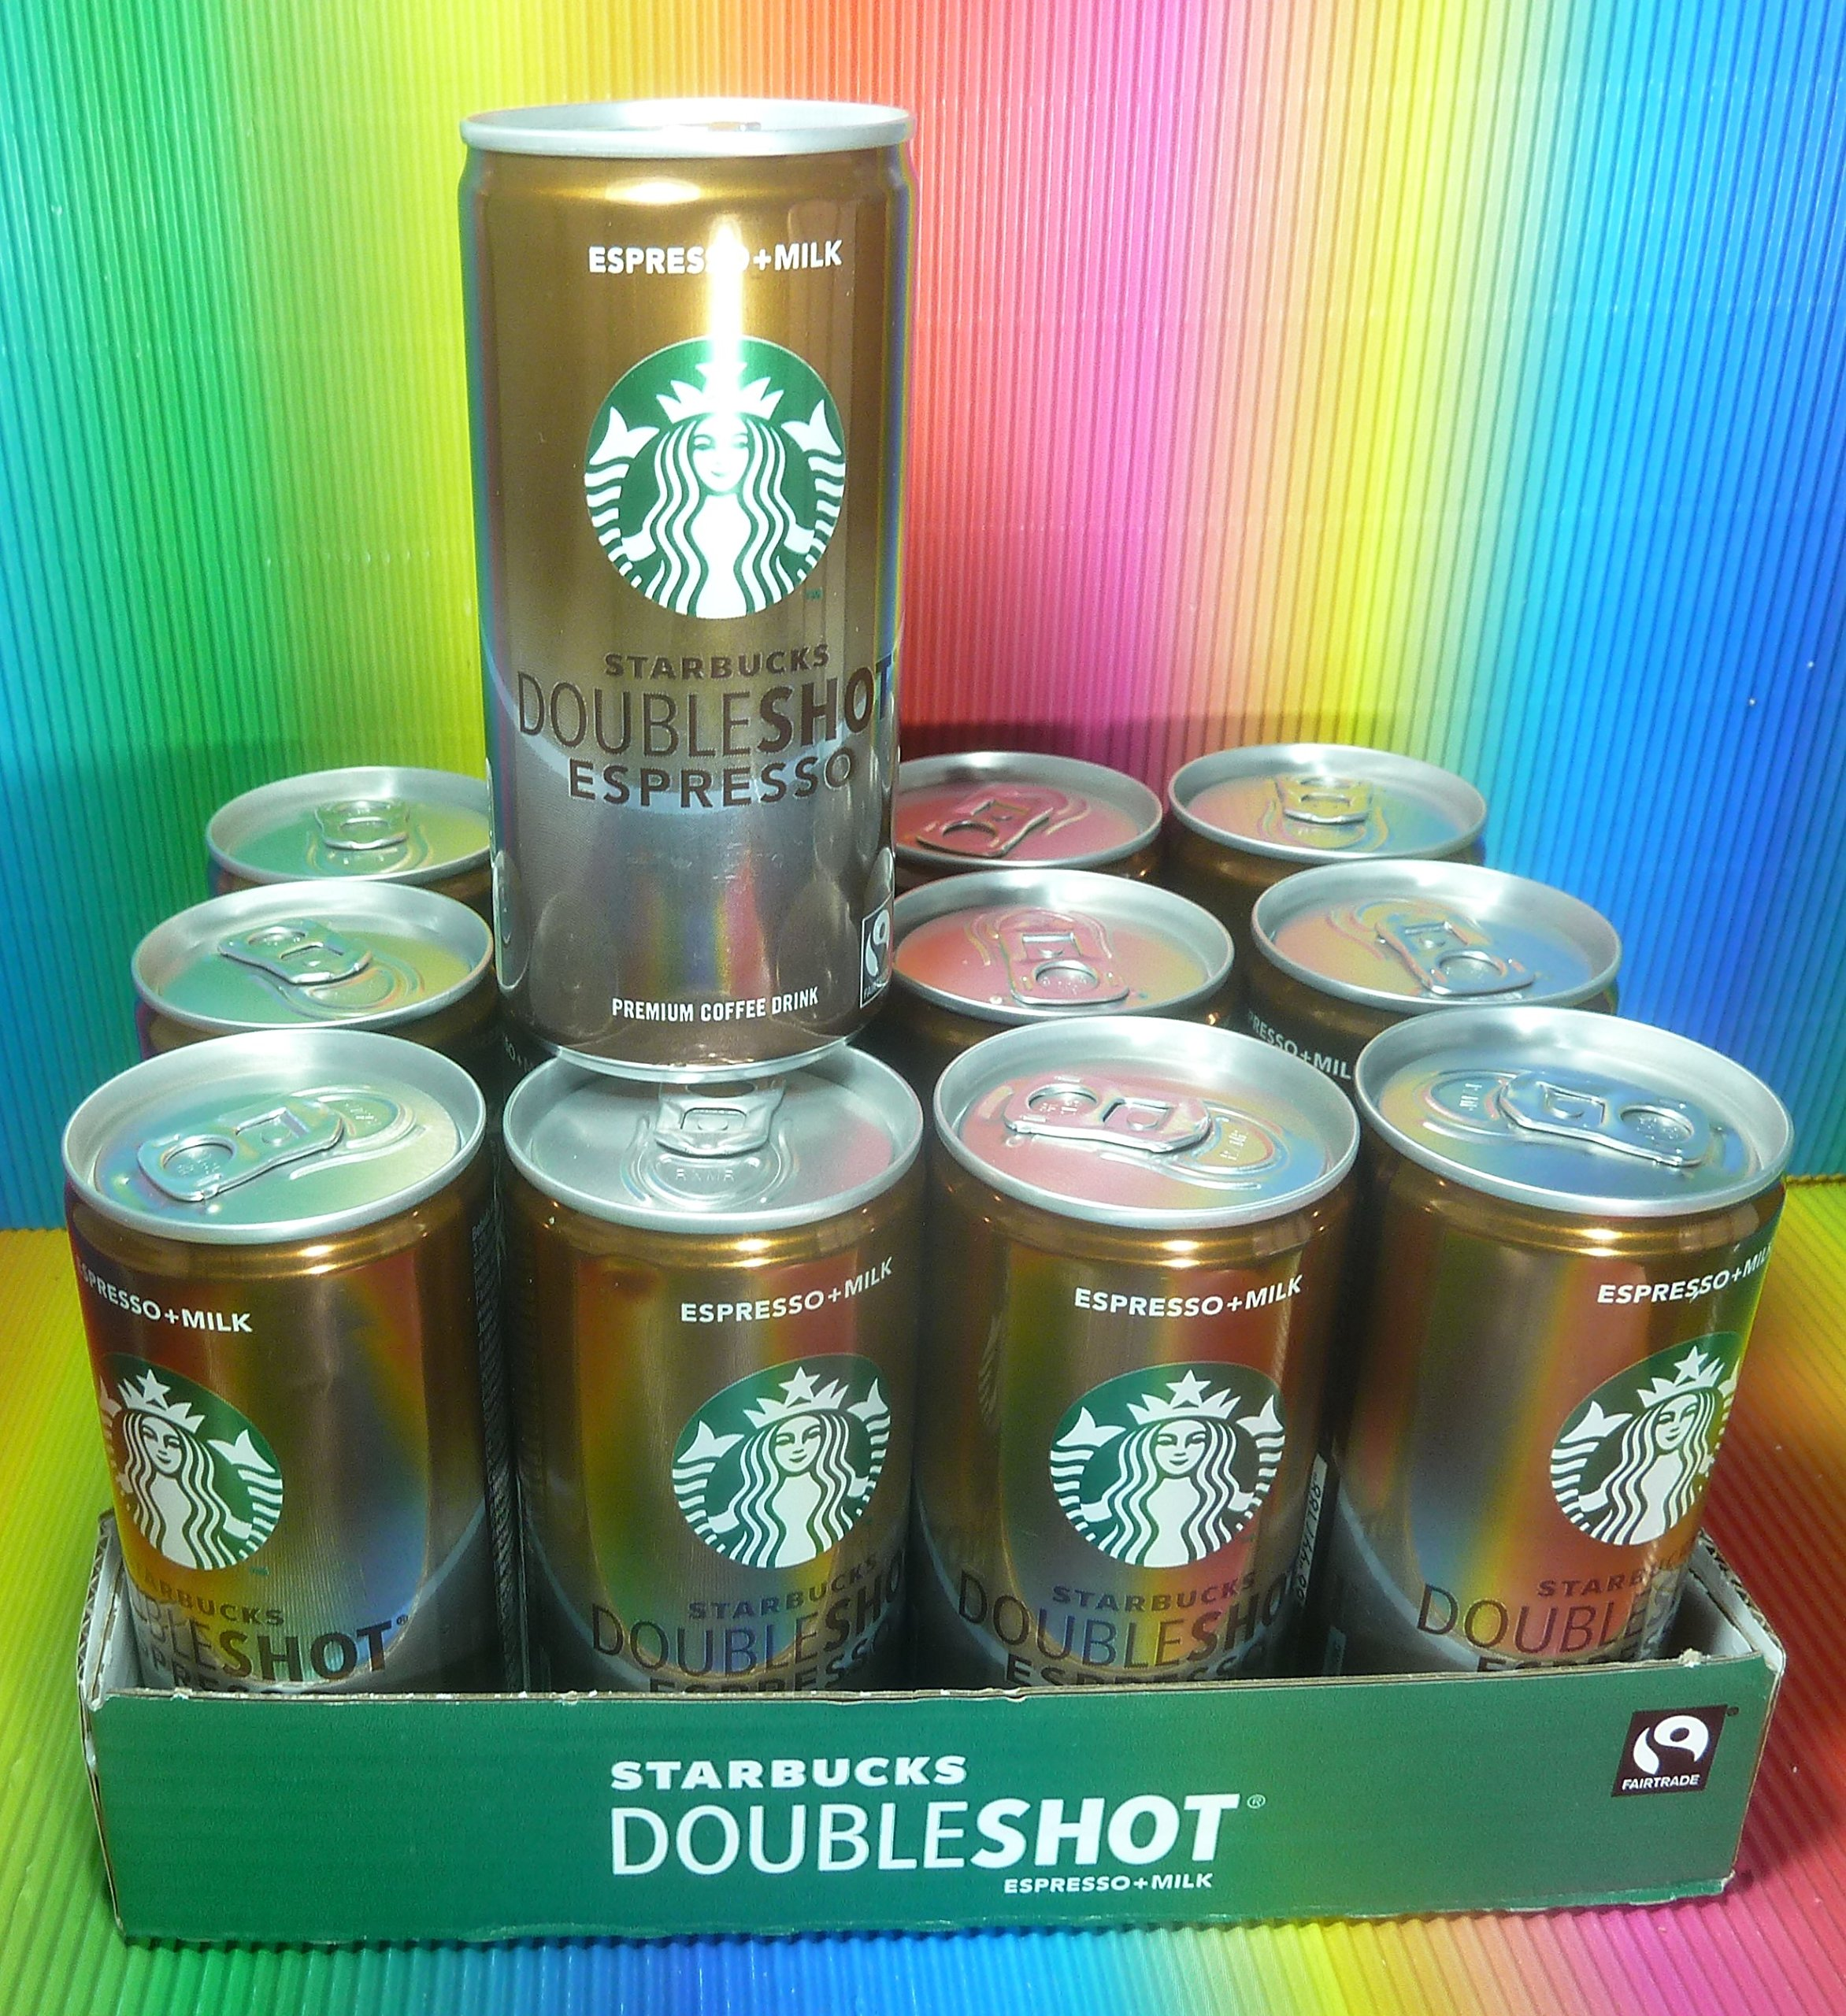 STARBUCKS ESPRESSO + MILK DOUBLESHOT ESPRESSO CAN 12 X 200 ML,PREMIUM COFFEE by Starbucks